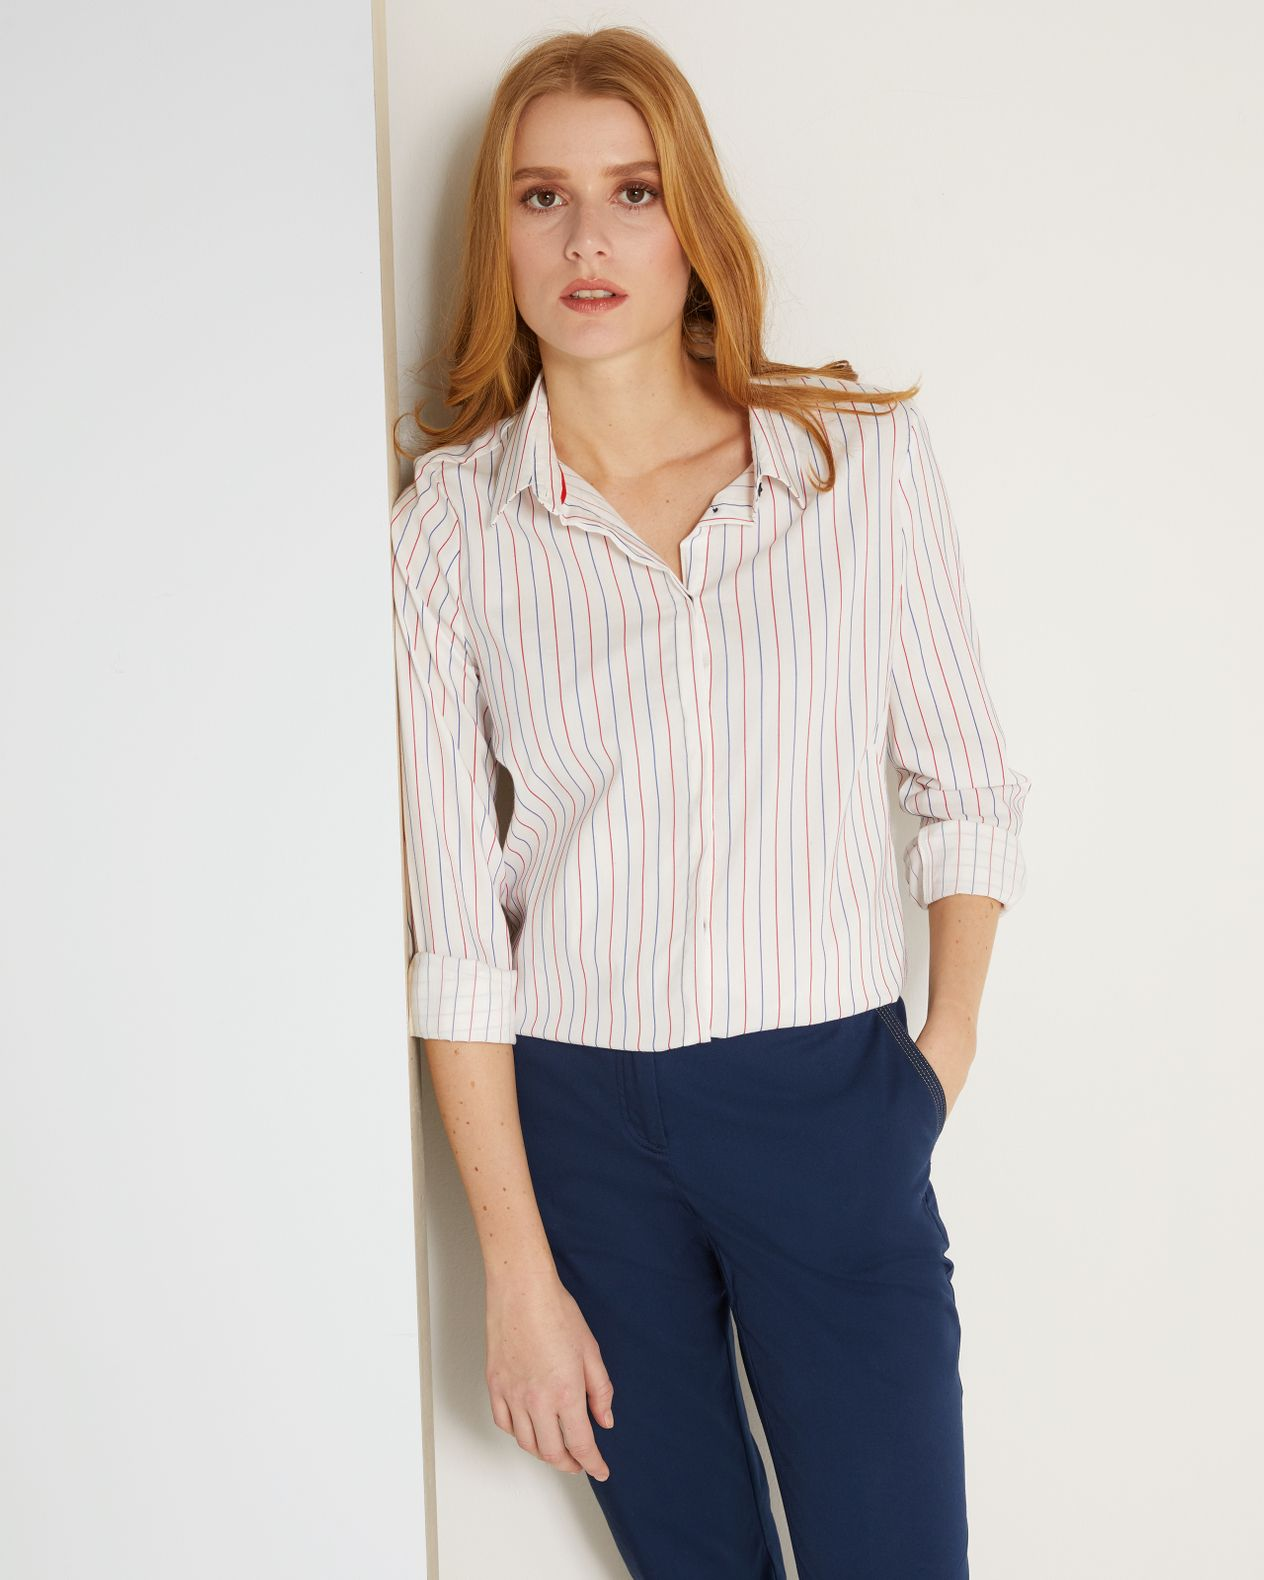 Chemise femme inspiration fines rayures